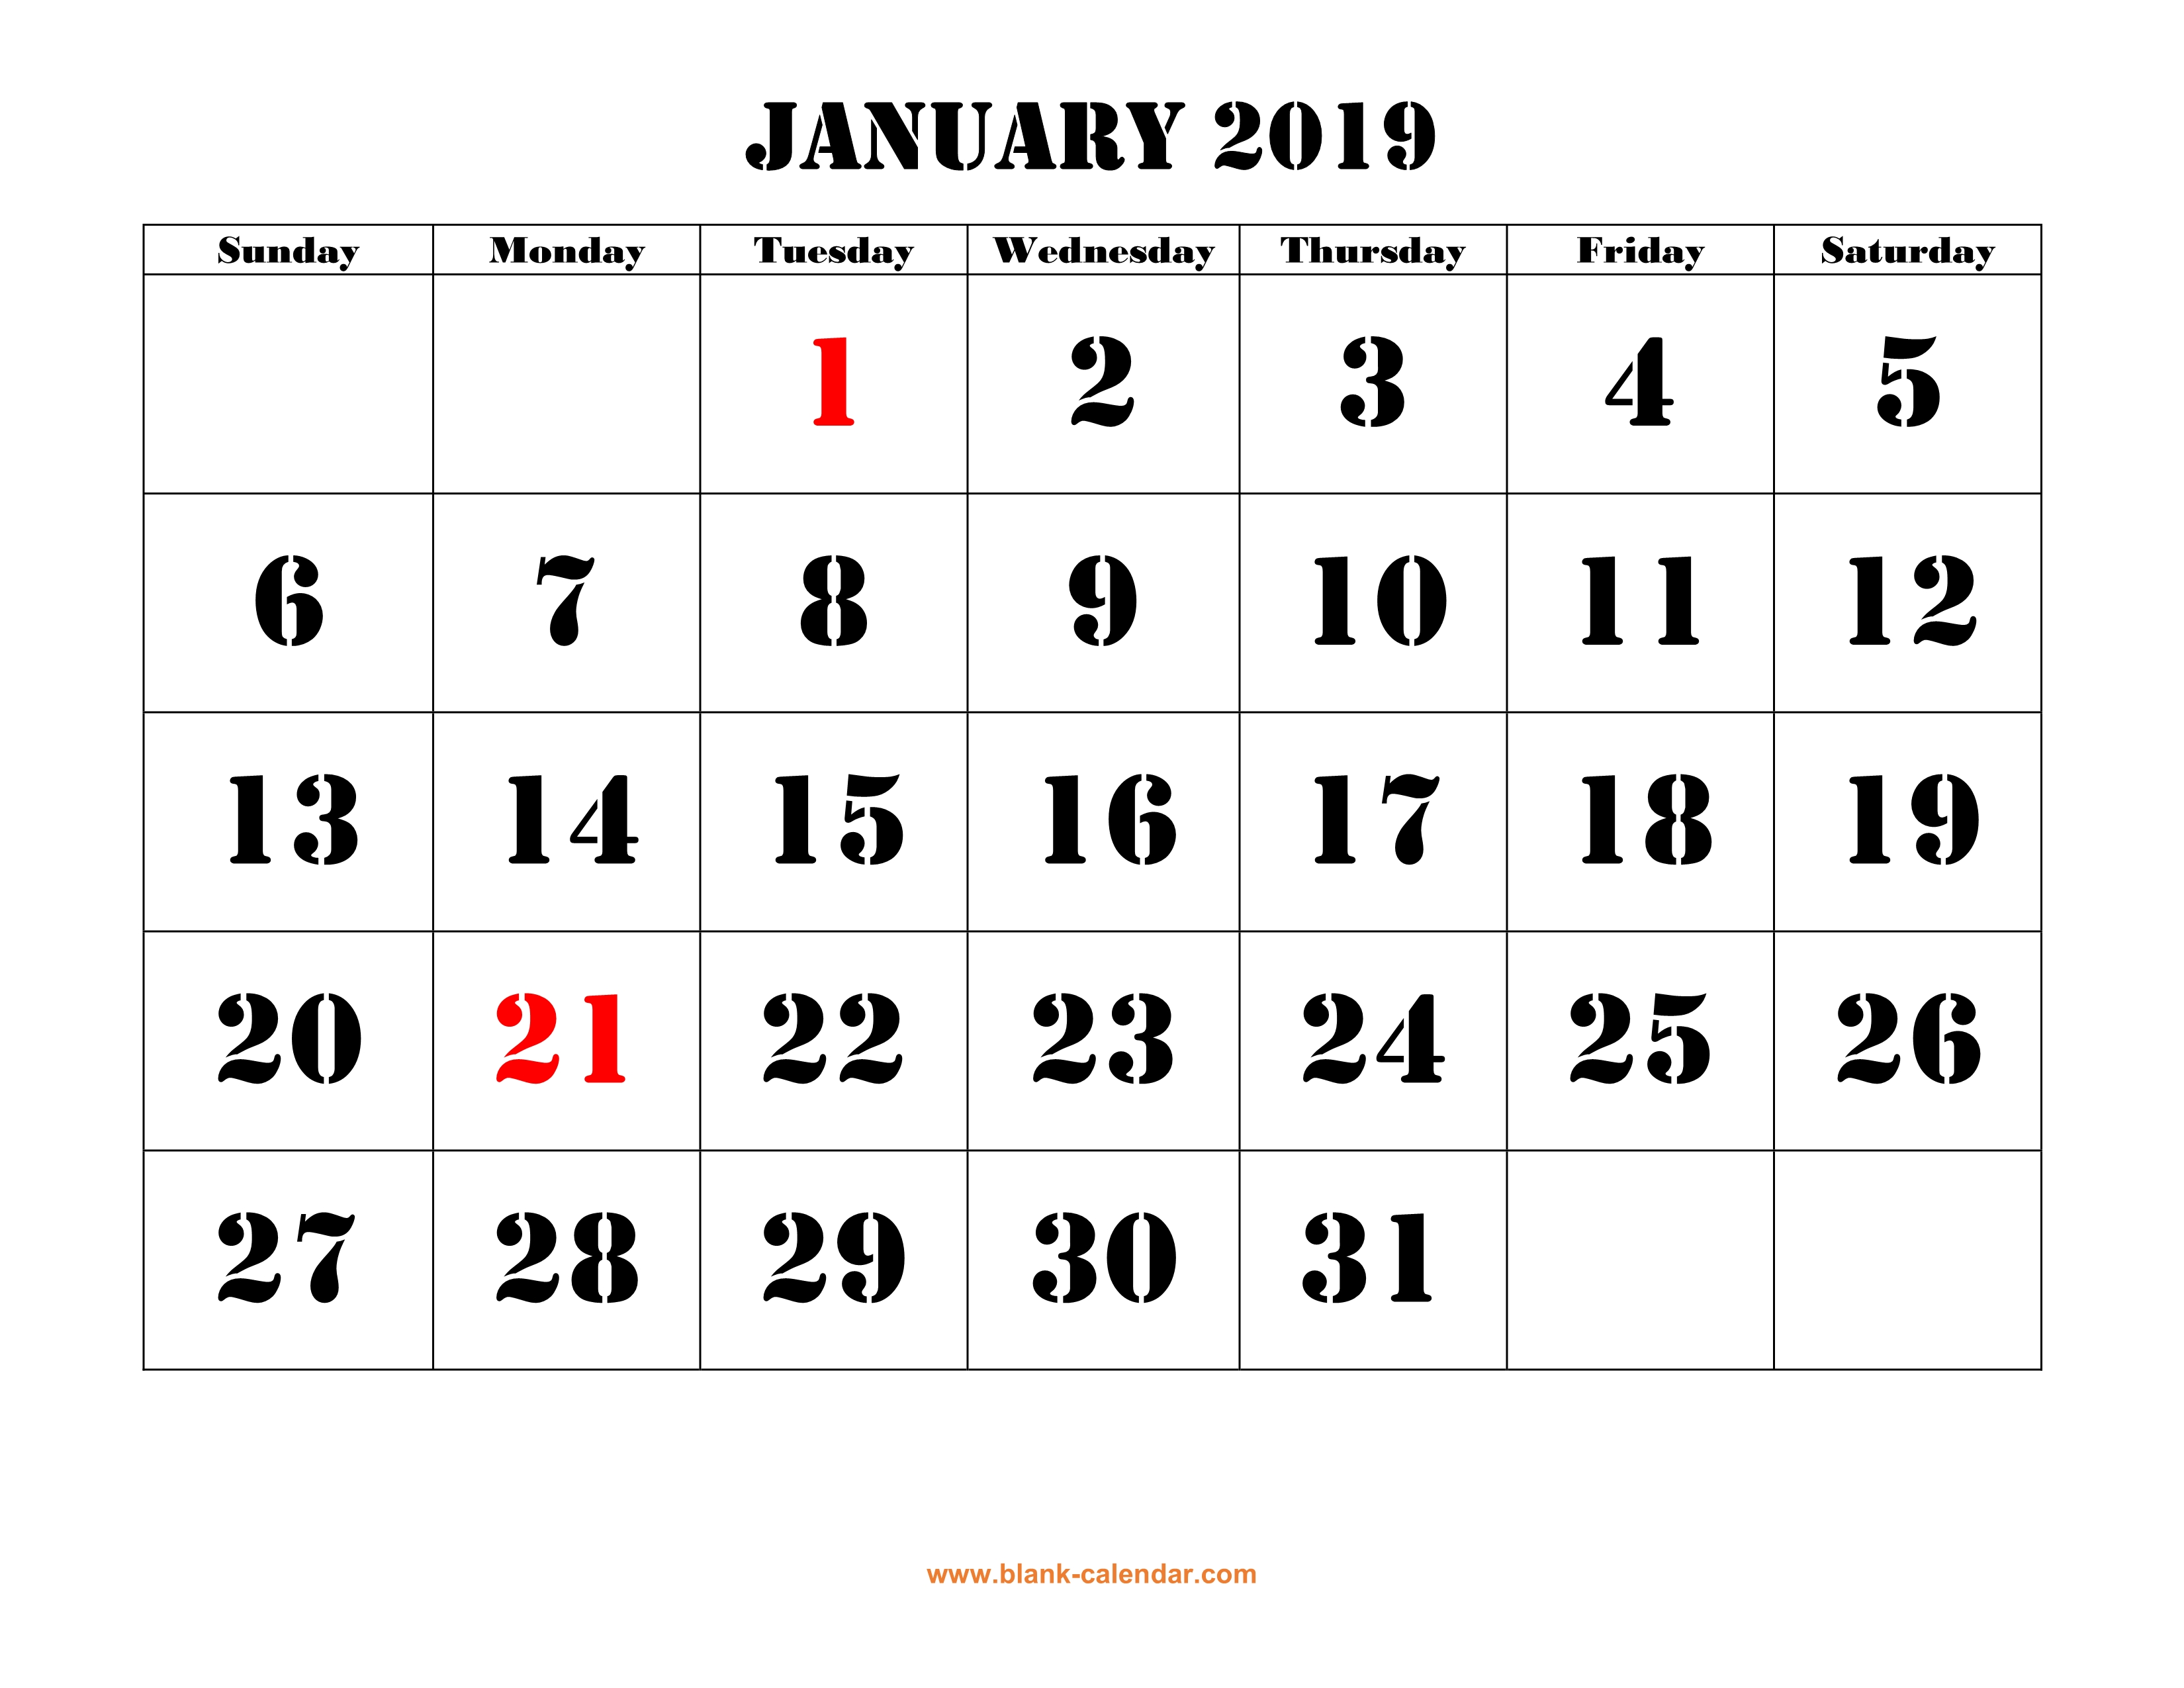 printable calendar 2019 large font design holidays on red one month per page